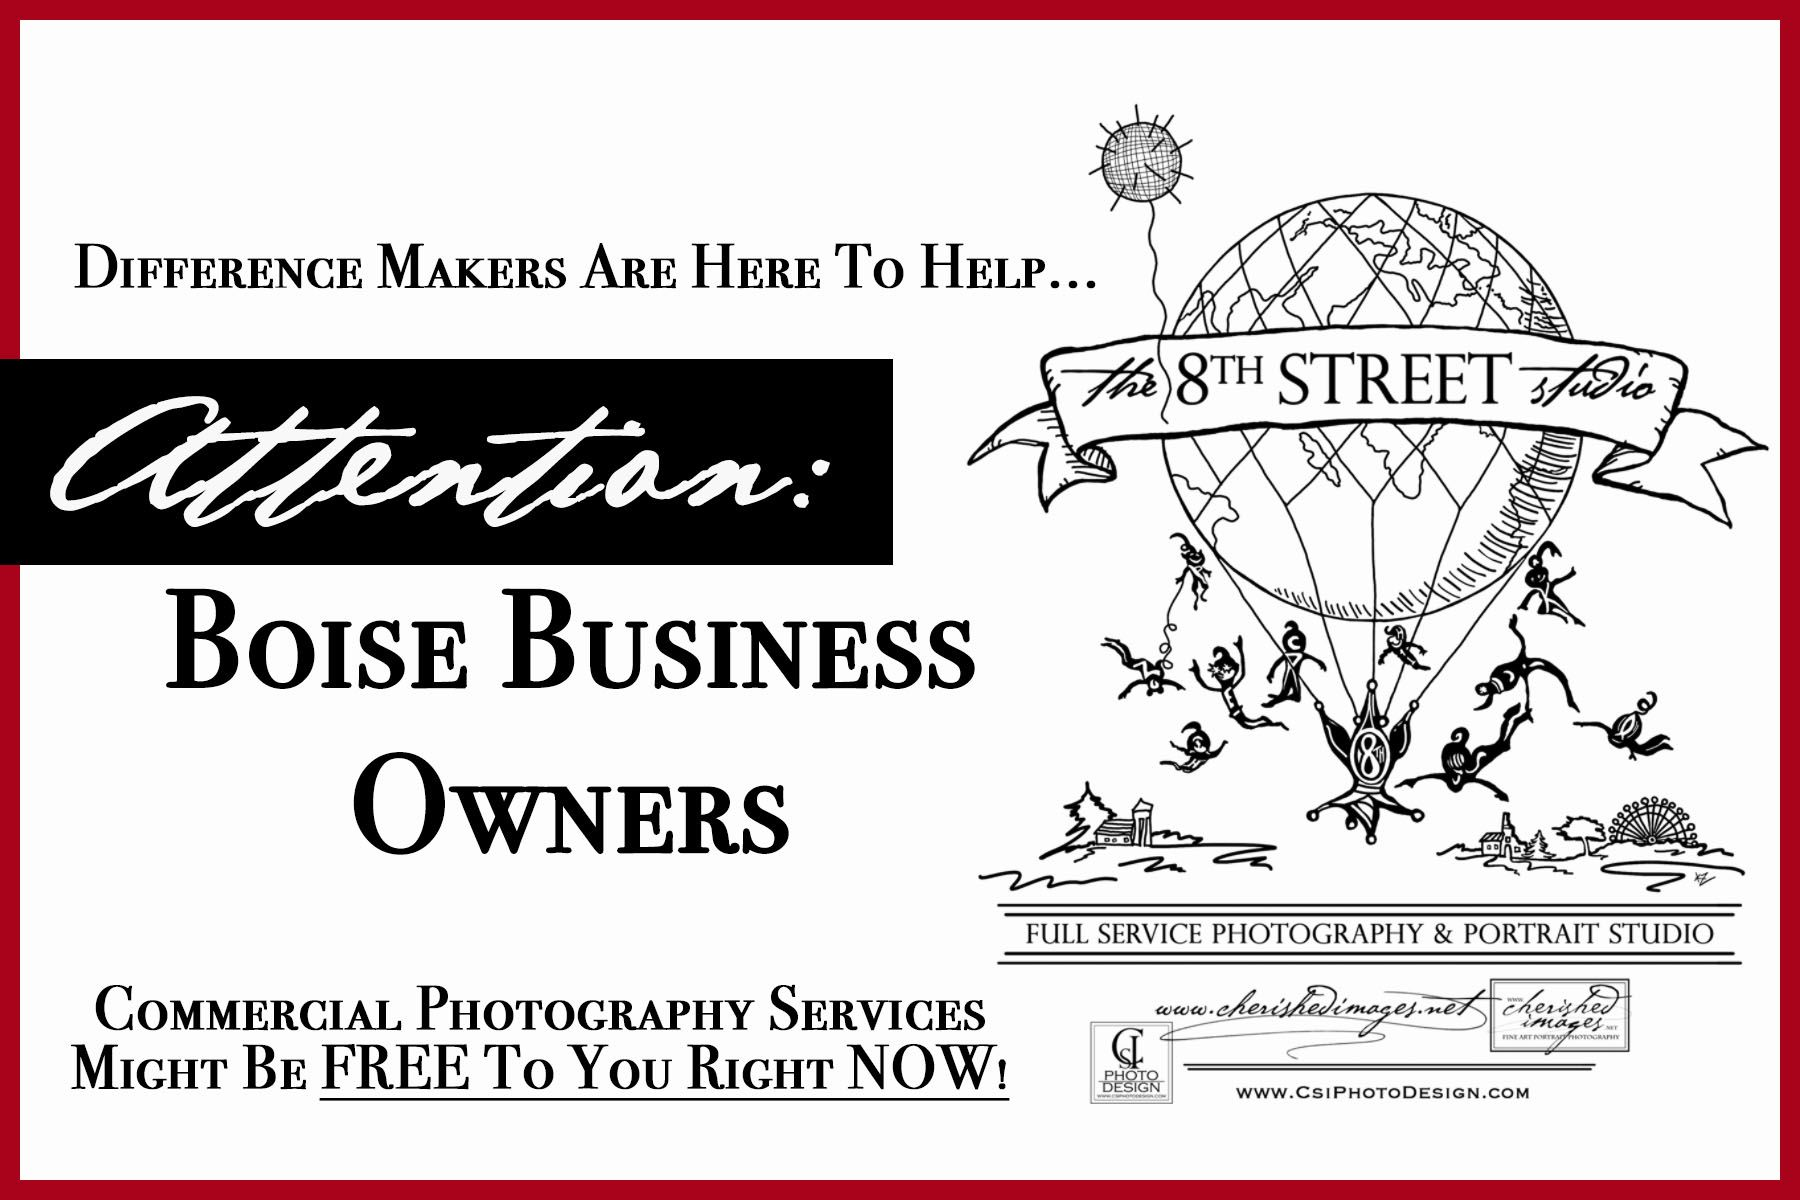 Commercial Photography might be free to Boise Business Owners Right Now